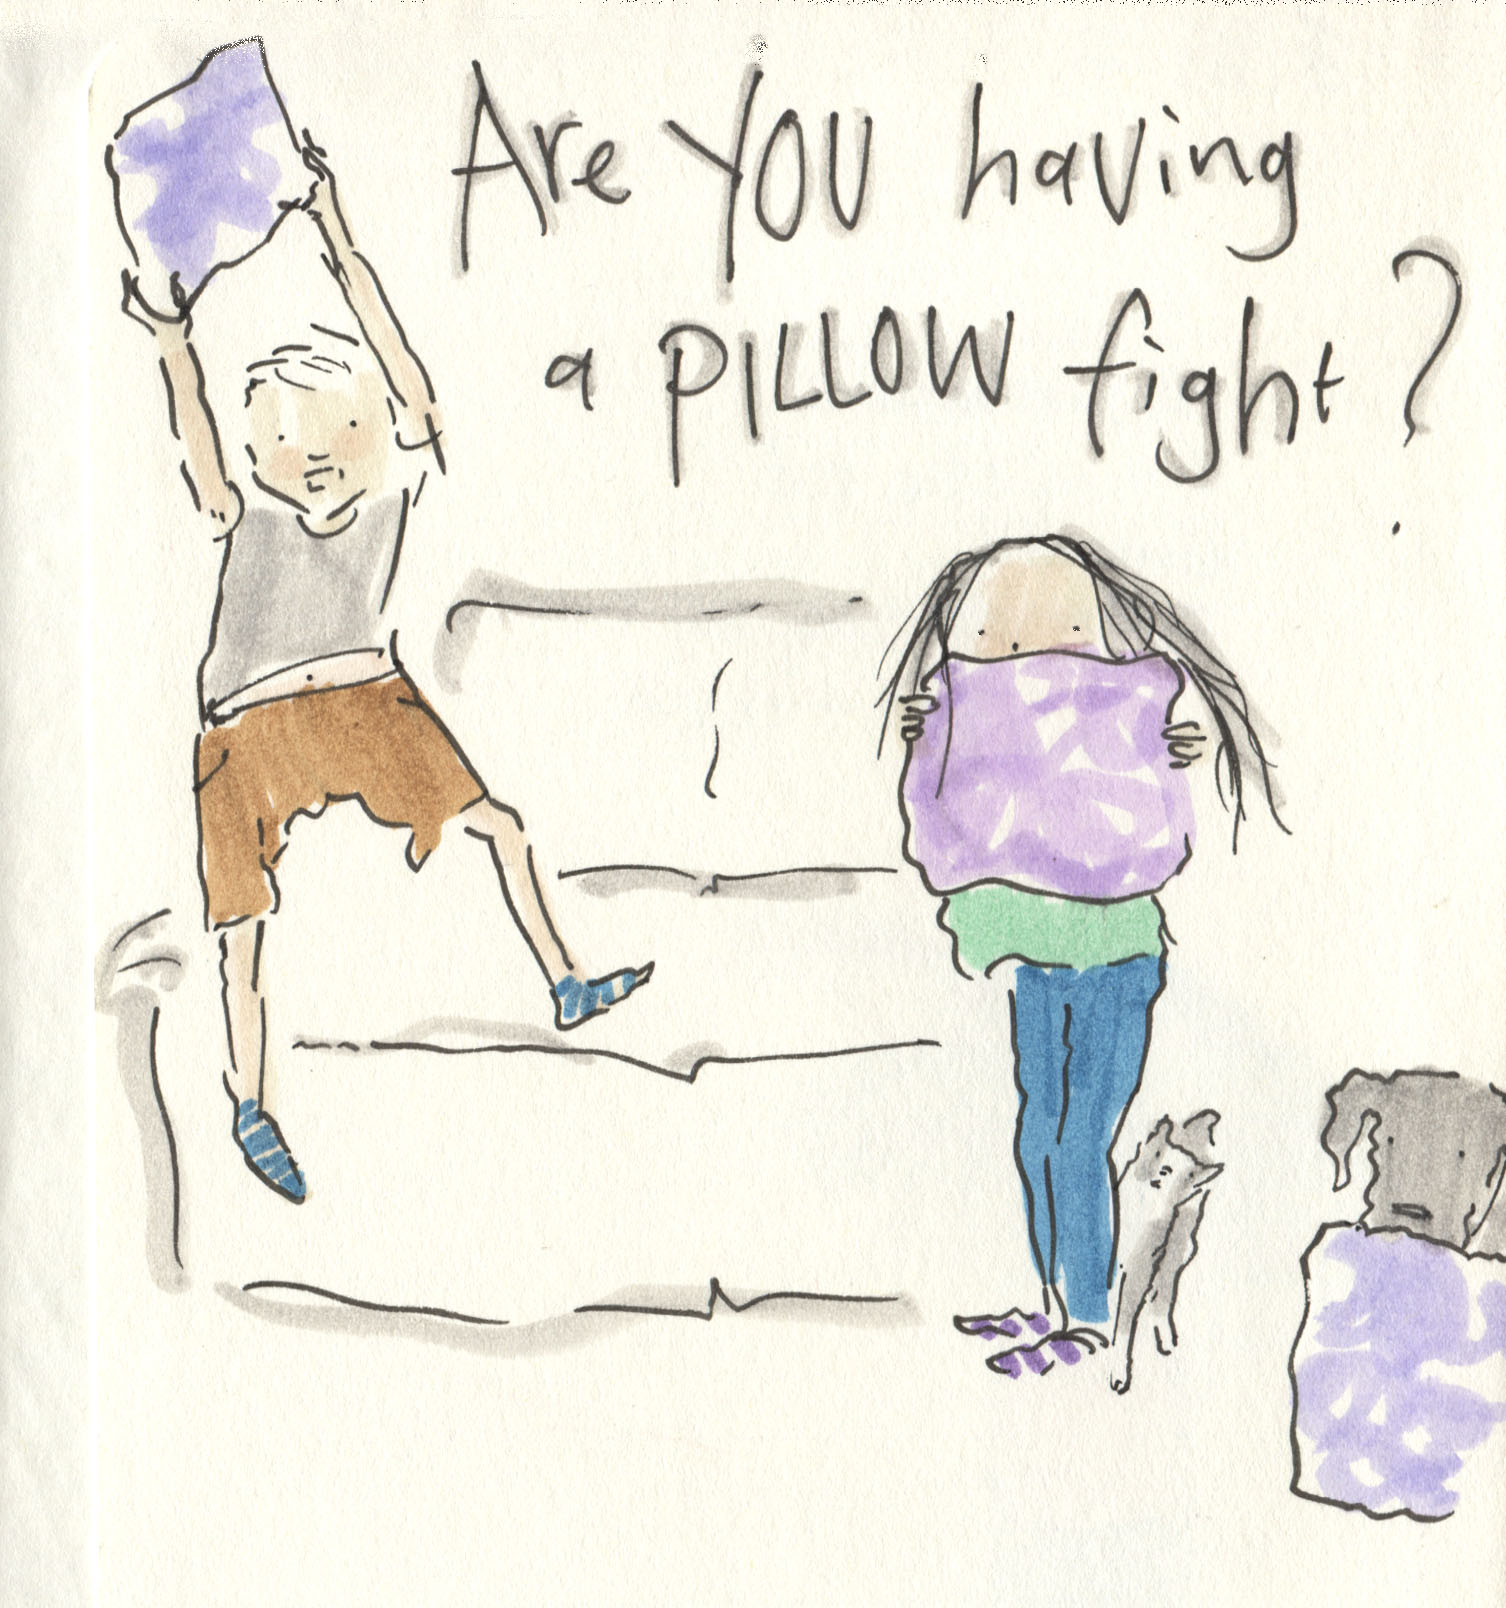 are you having a pillow fight